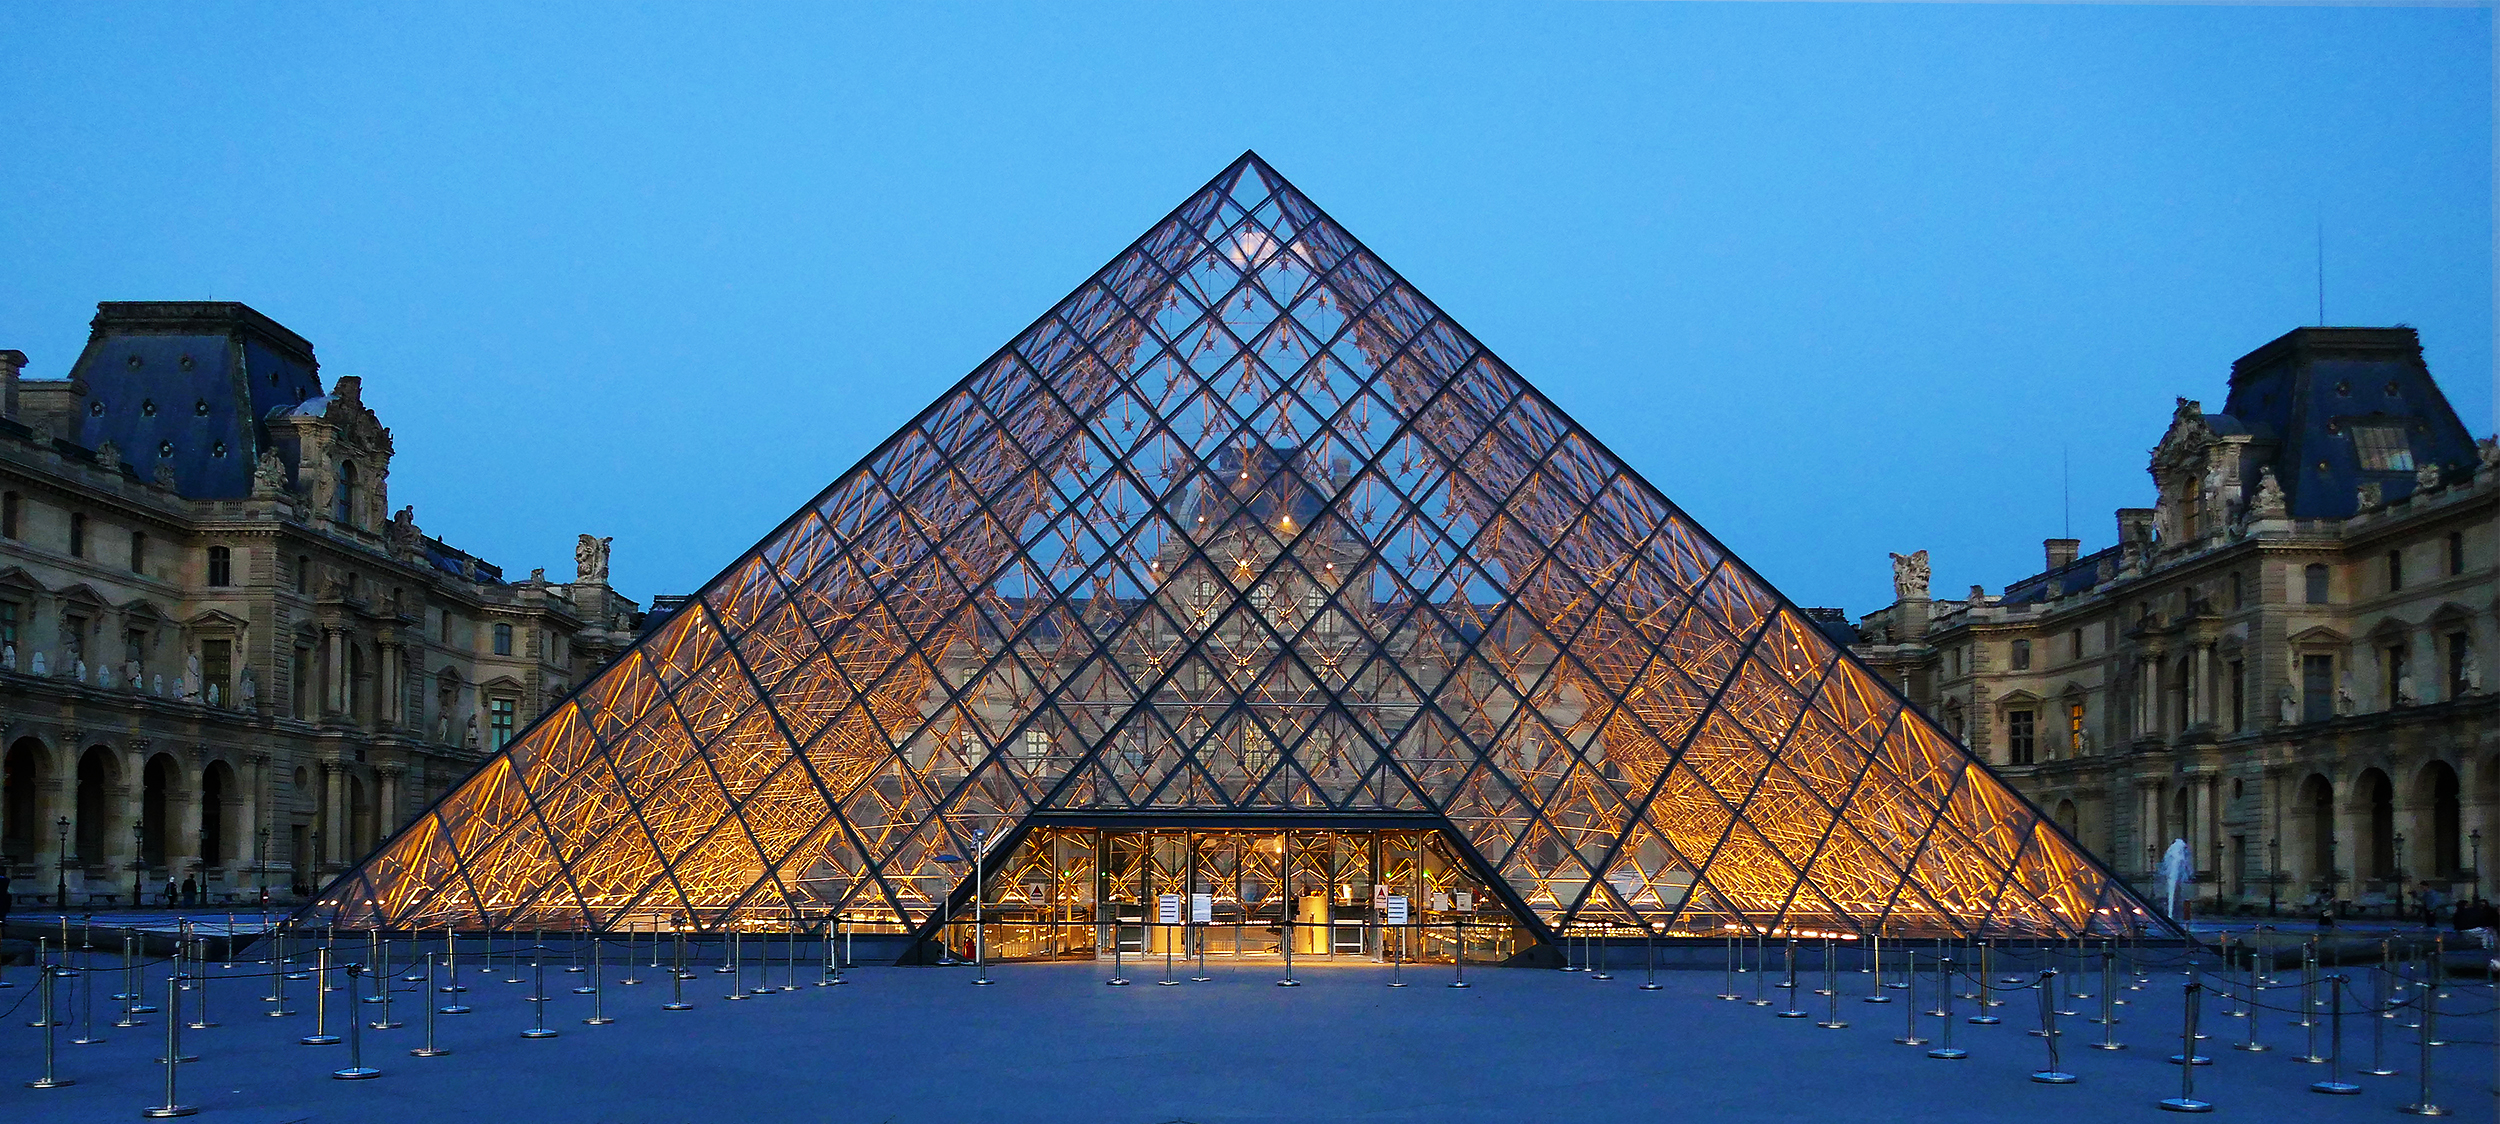 Paris  Top Ten Tips For Mona Lisa And The Louvre